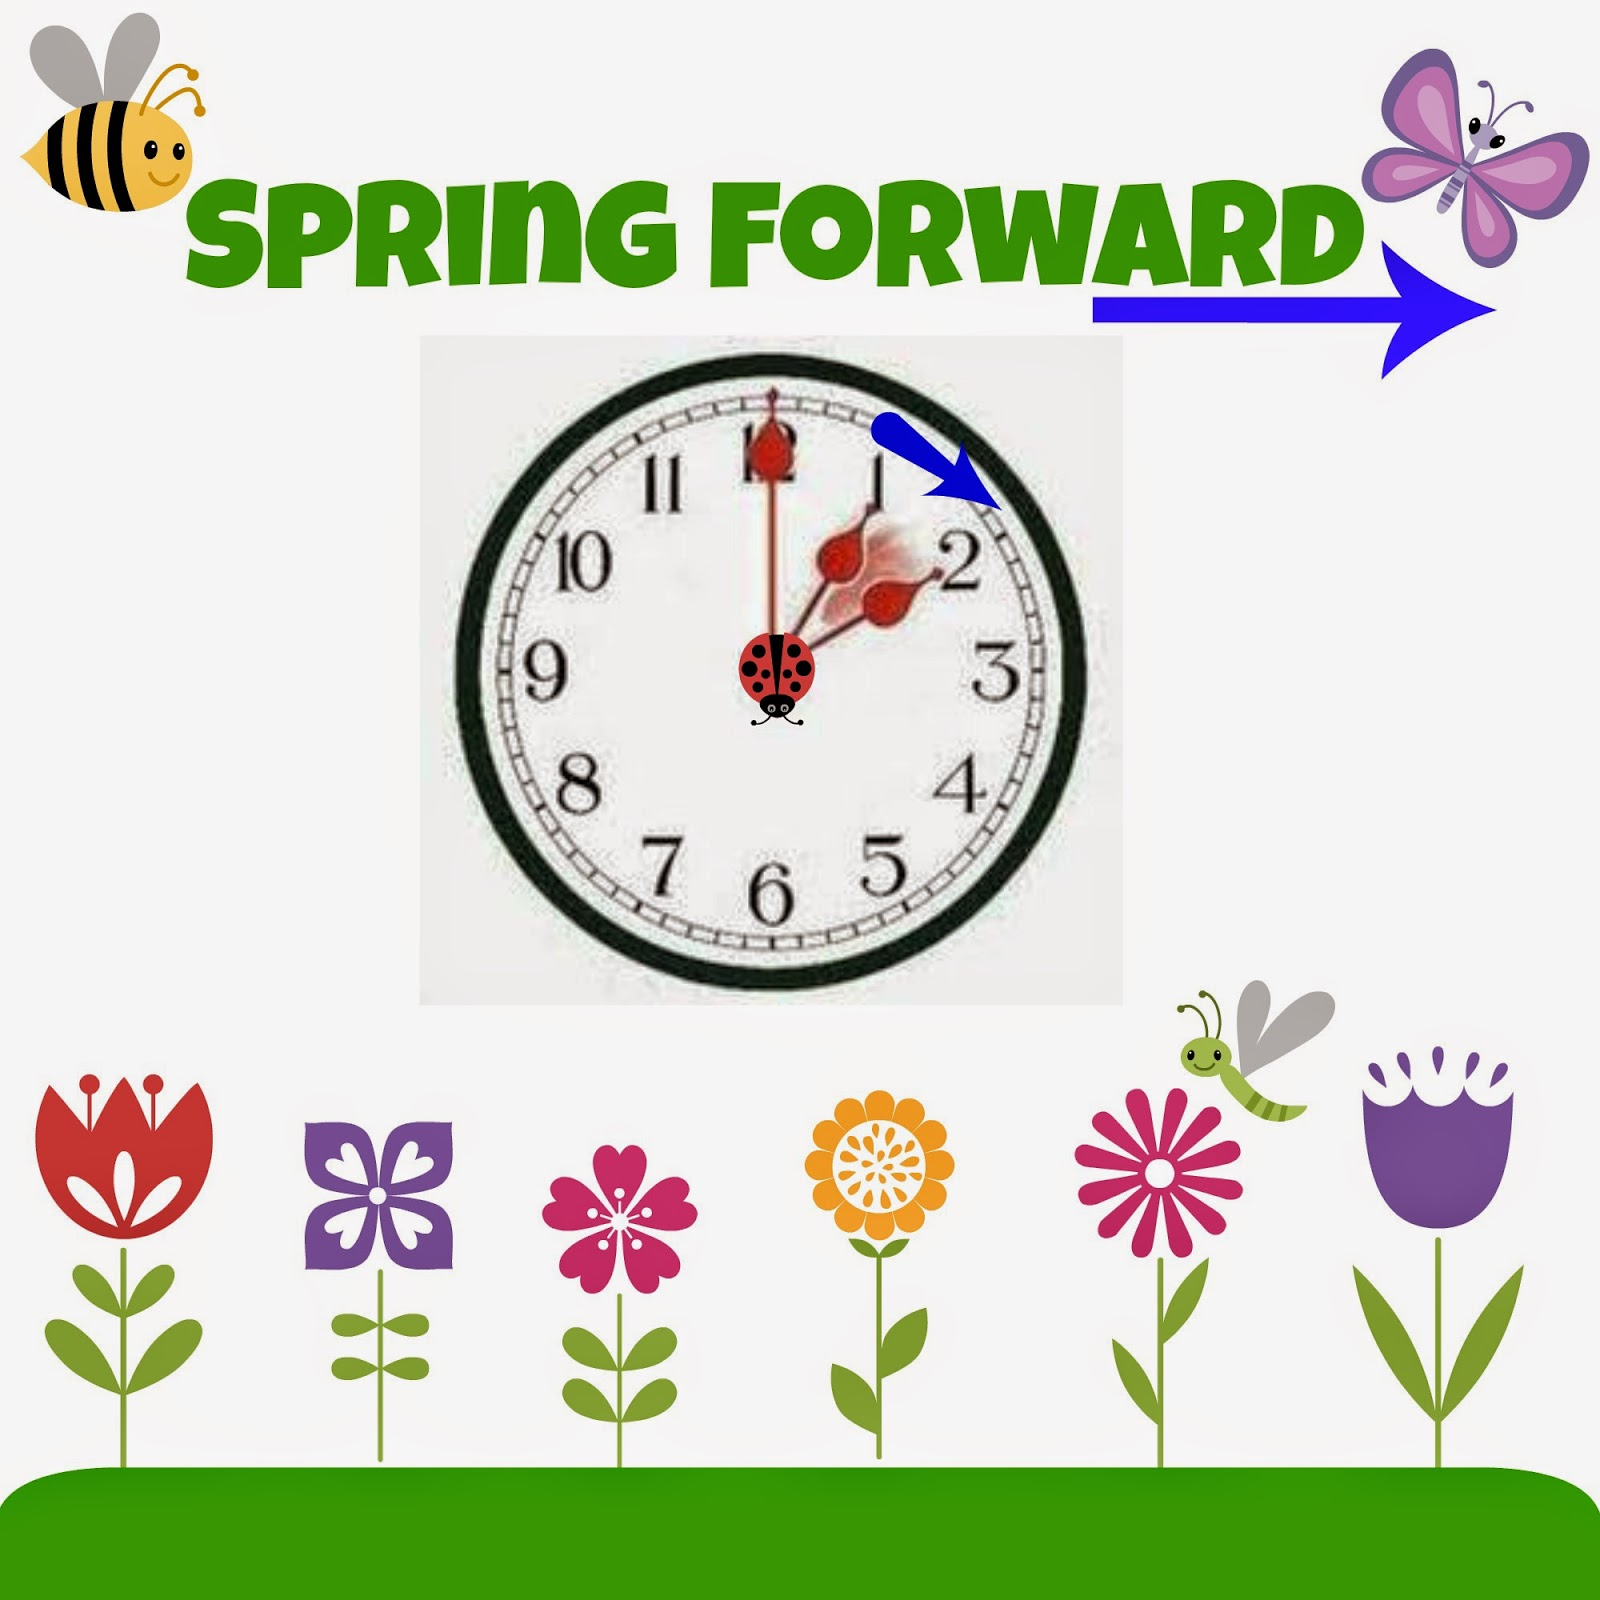 daylight savings baby sleep tips, spring forward baby sleep tips, time change baby sleep tips